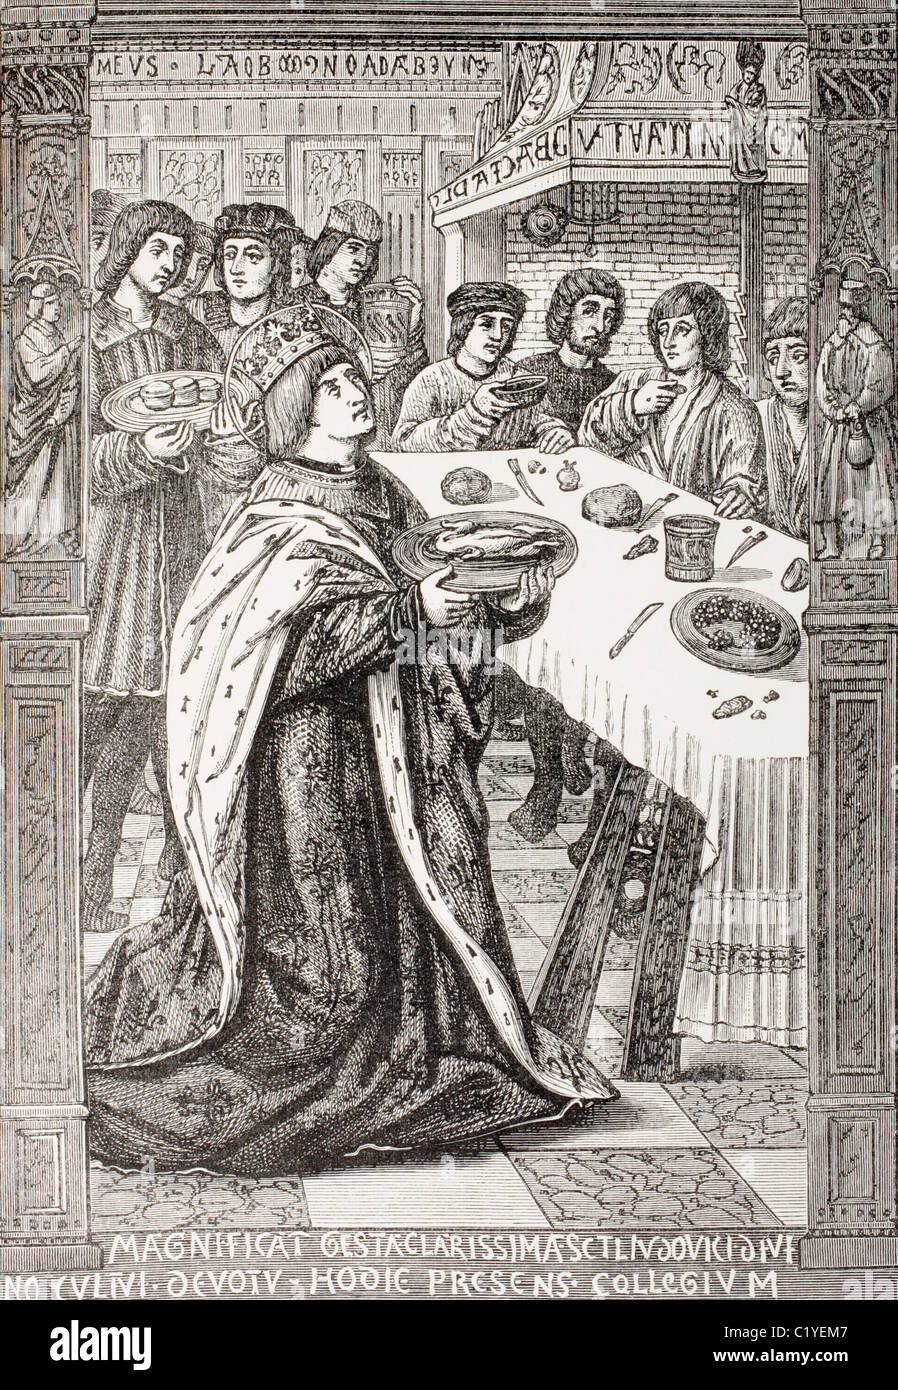 St. Louis, King Louis IX of France, 1214 - 1270, serving a meal to the poor. Stock Photo